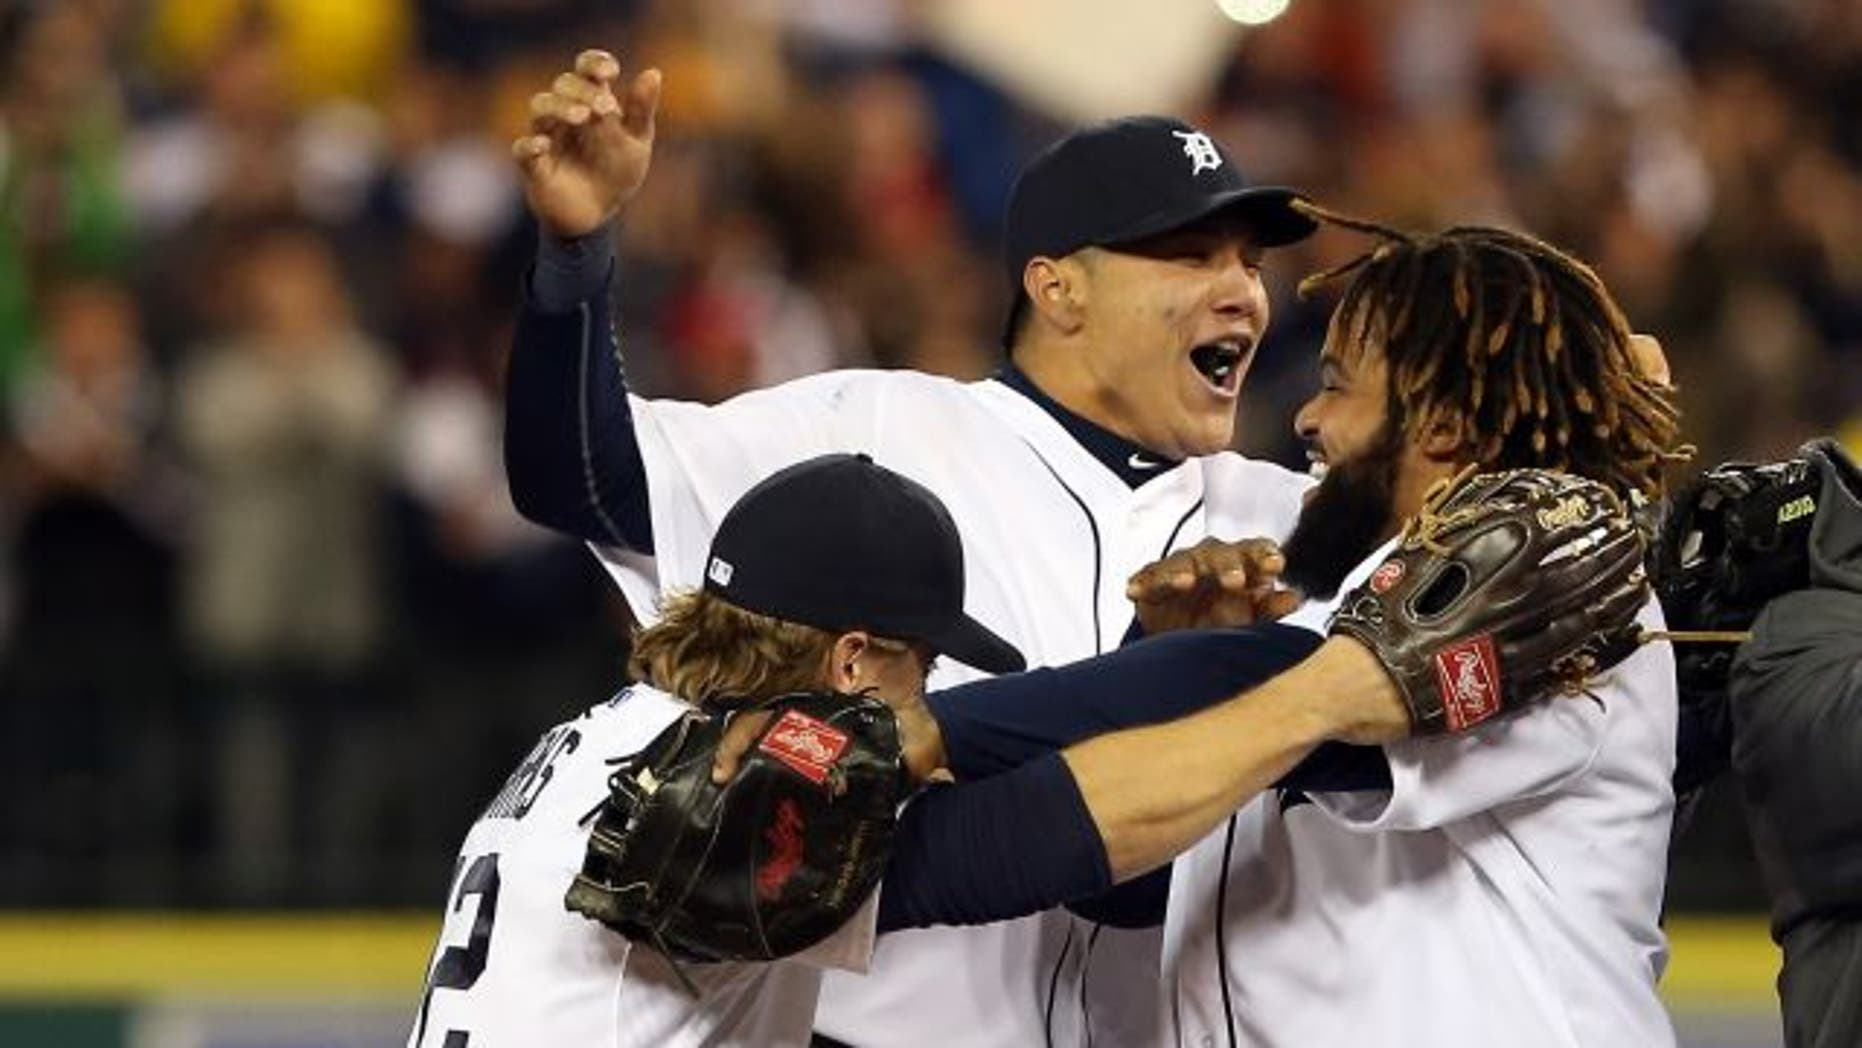 DETROIT, MI - OCTOBER 18:  (L-R) Andy Dirks #12, Avisail Garcia #34 and Prince Fielder #28 of the Detroit Tigers celebrate after they won 8-1 against the New York Yankees during game four of the American League Championship Series at Comerica Park on October 18, 2012 in Detroit, Michigan.  (Photo by Leon Halip/Getty Images)